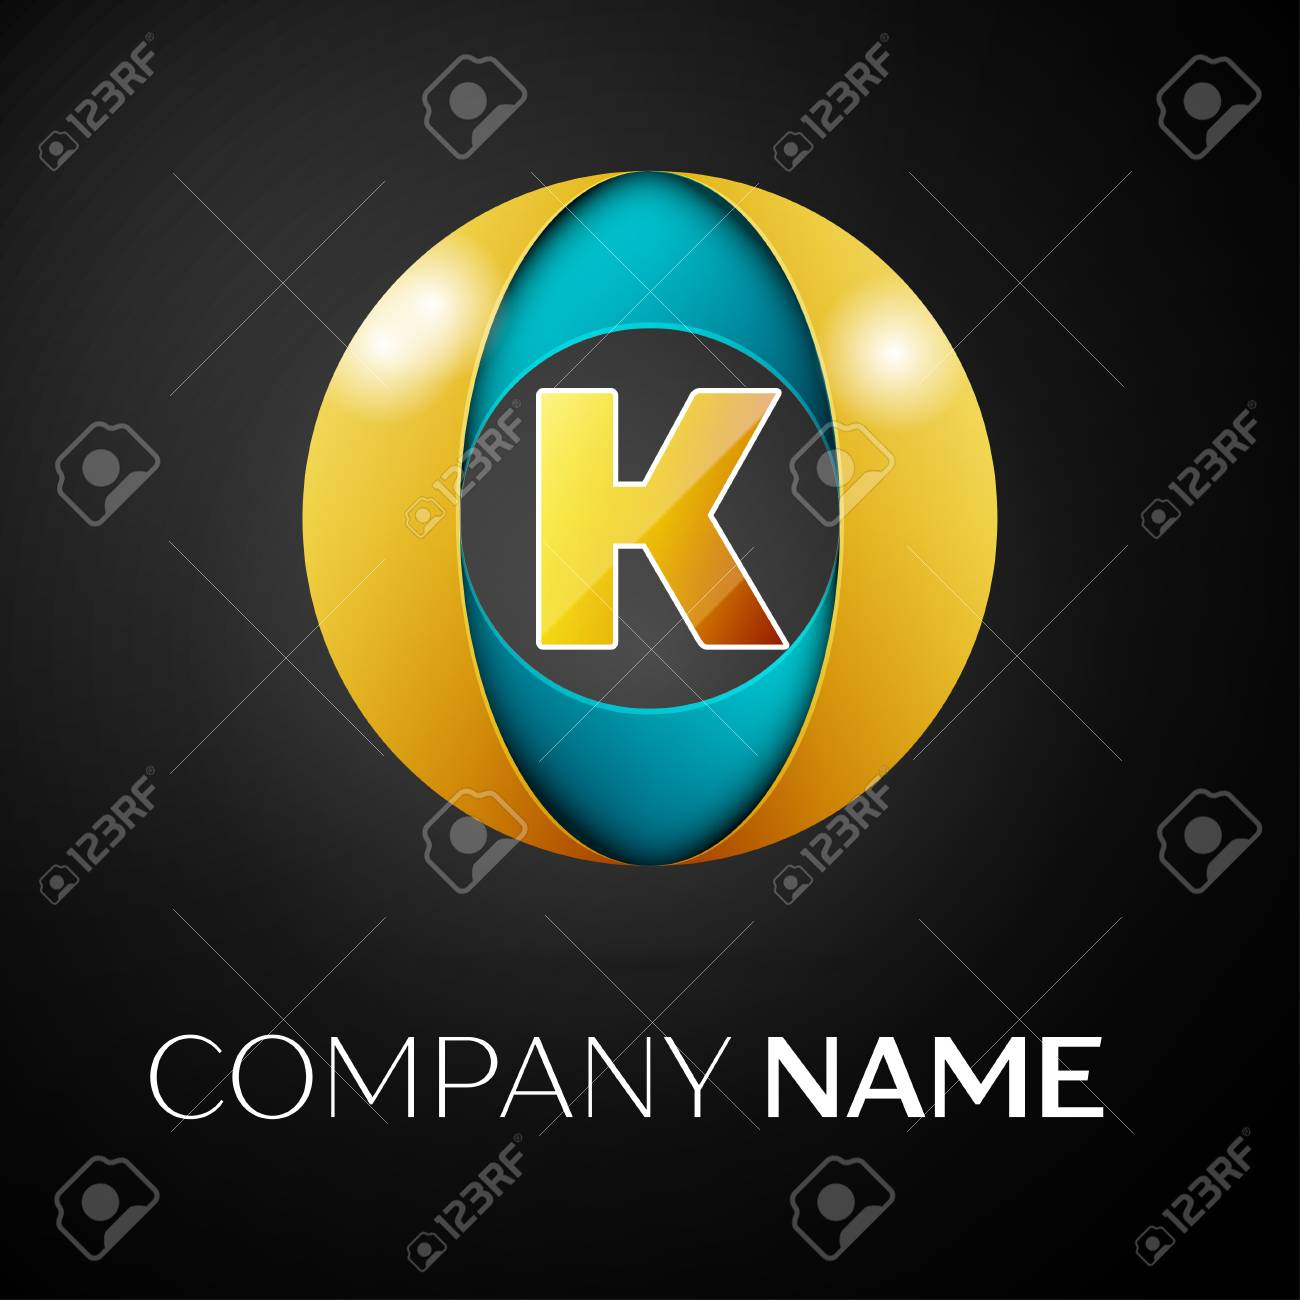 Letter K Symbol In The Colorful Circle On Black Background Template For Your Design Stock